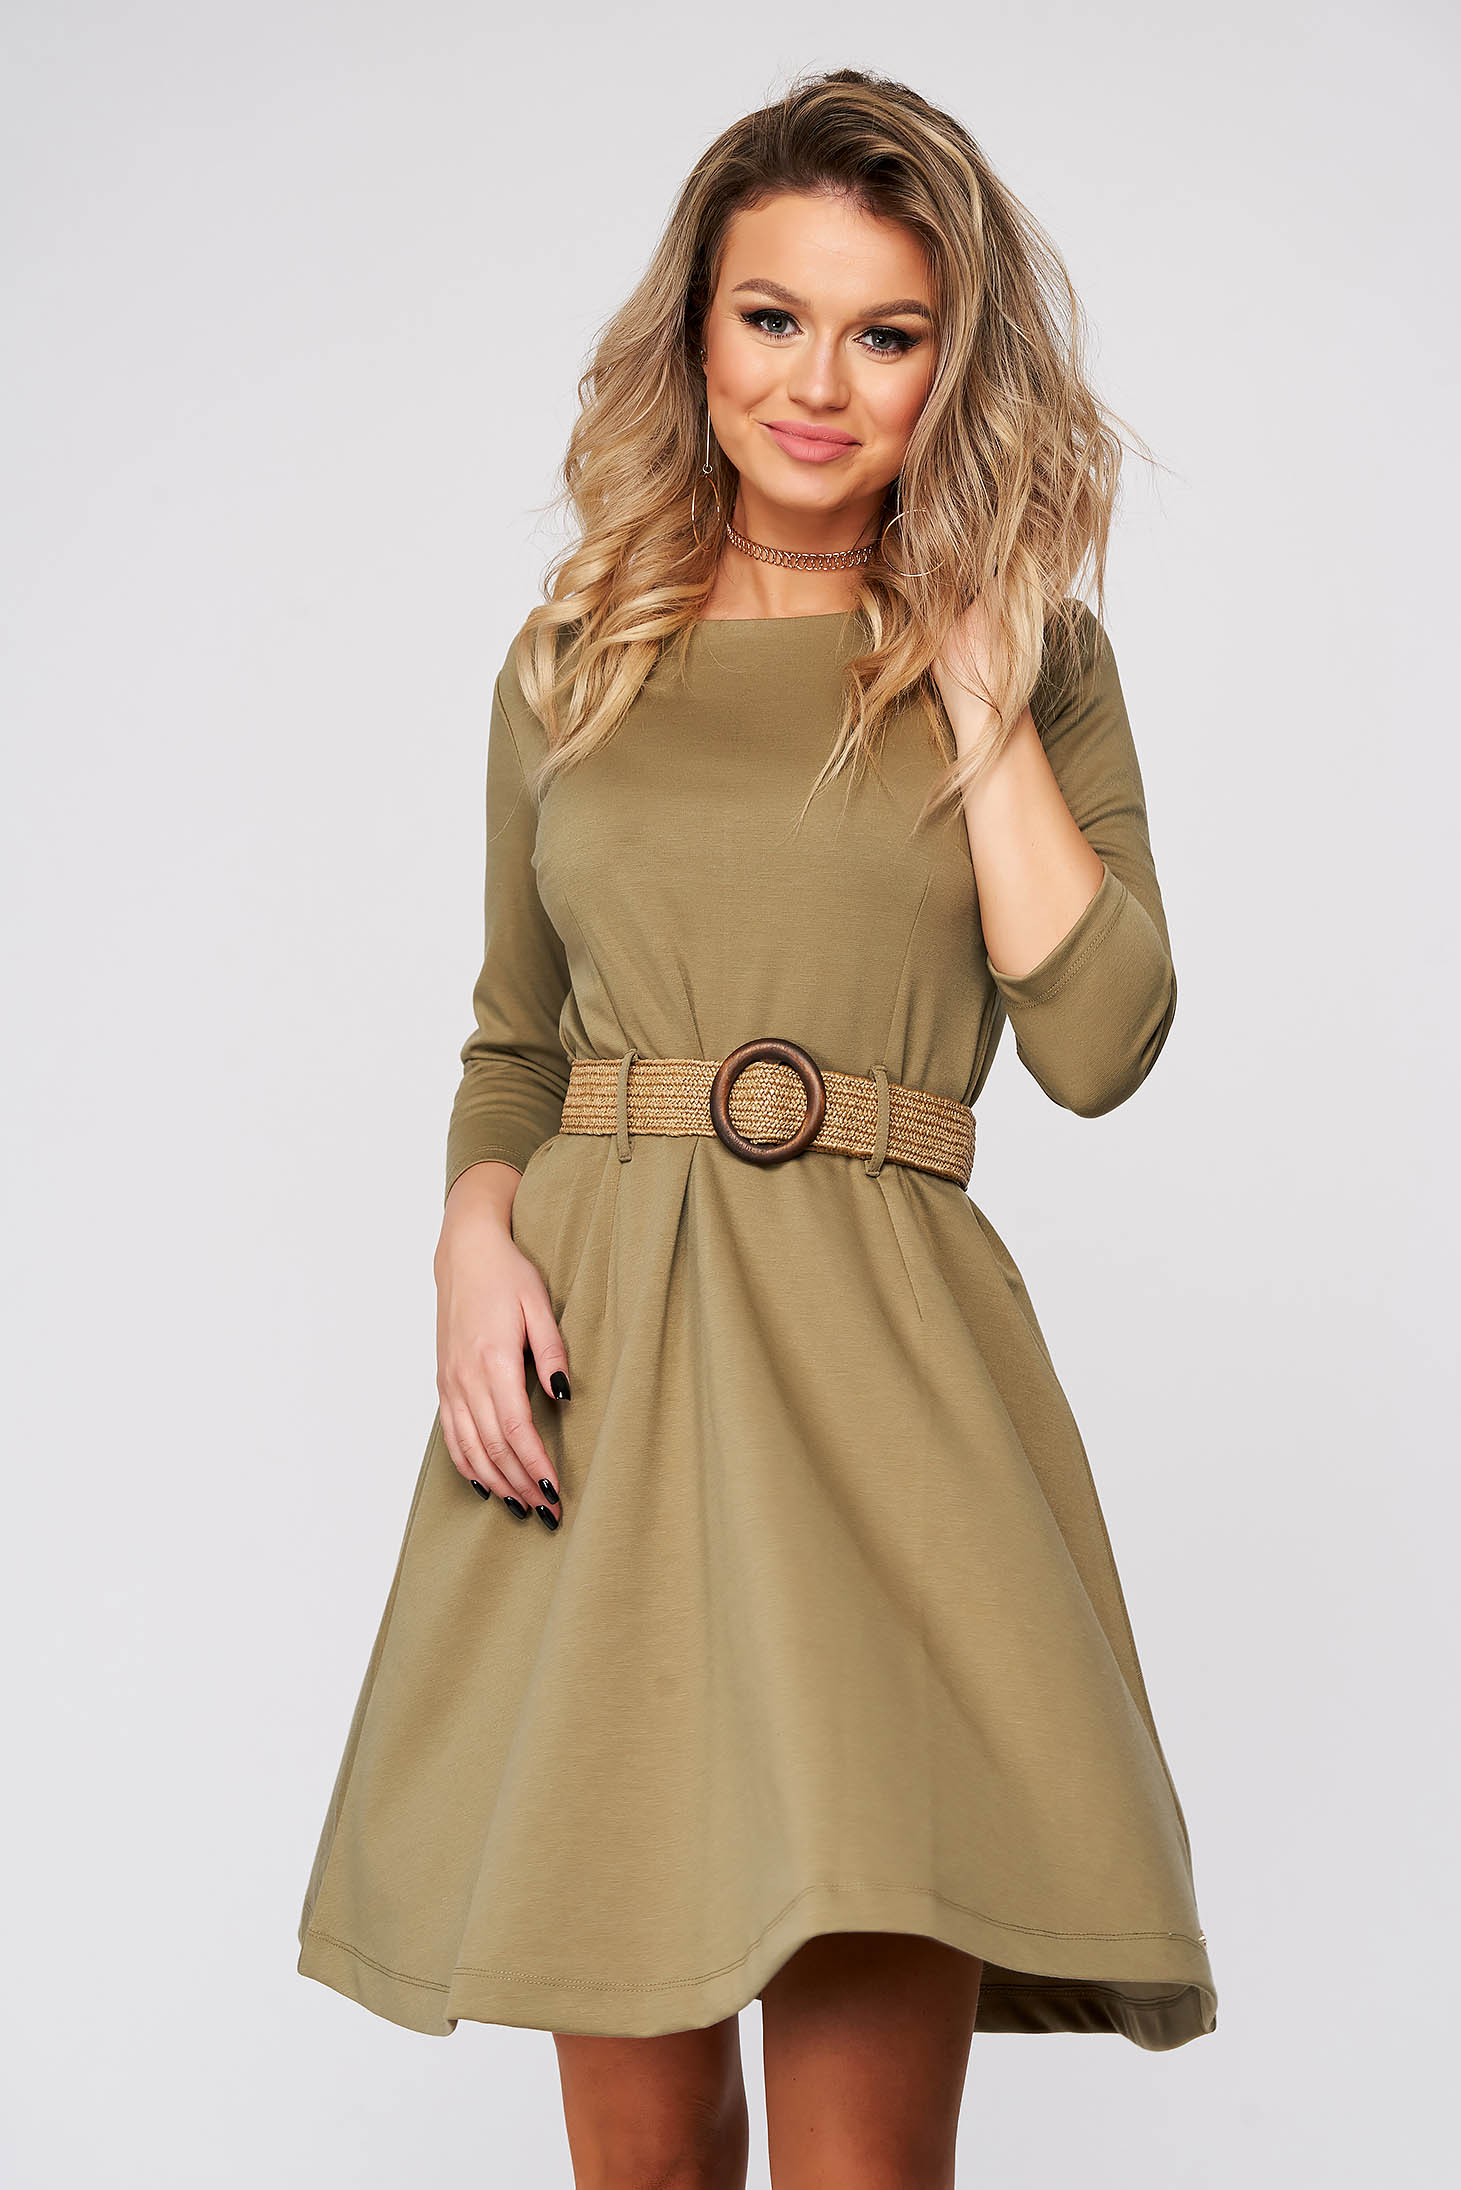 Green dress short cut daily cloche long sleeved accessorized with belt